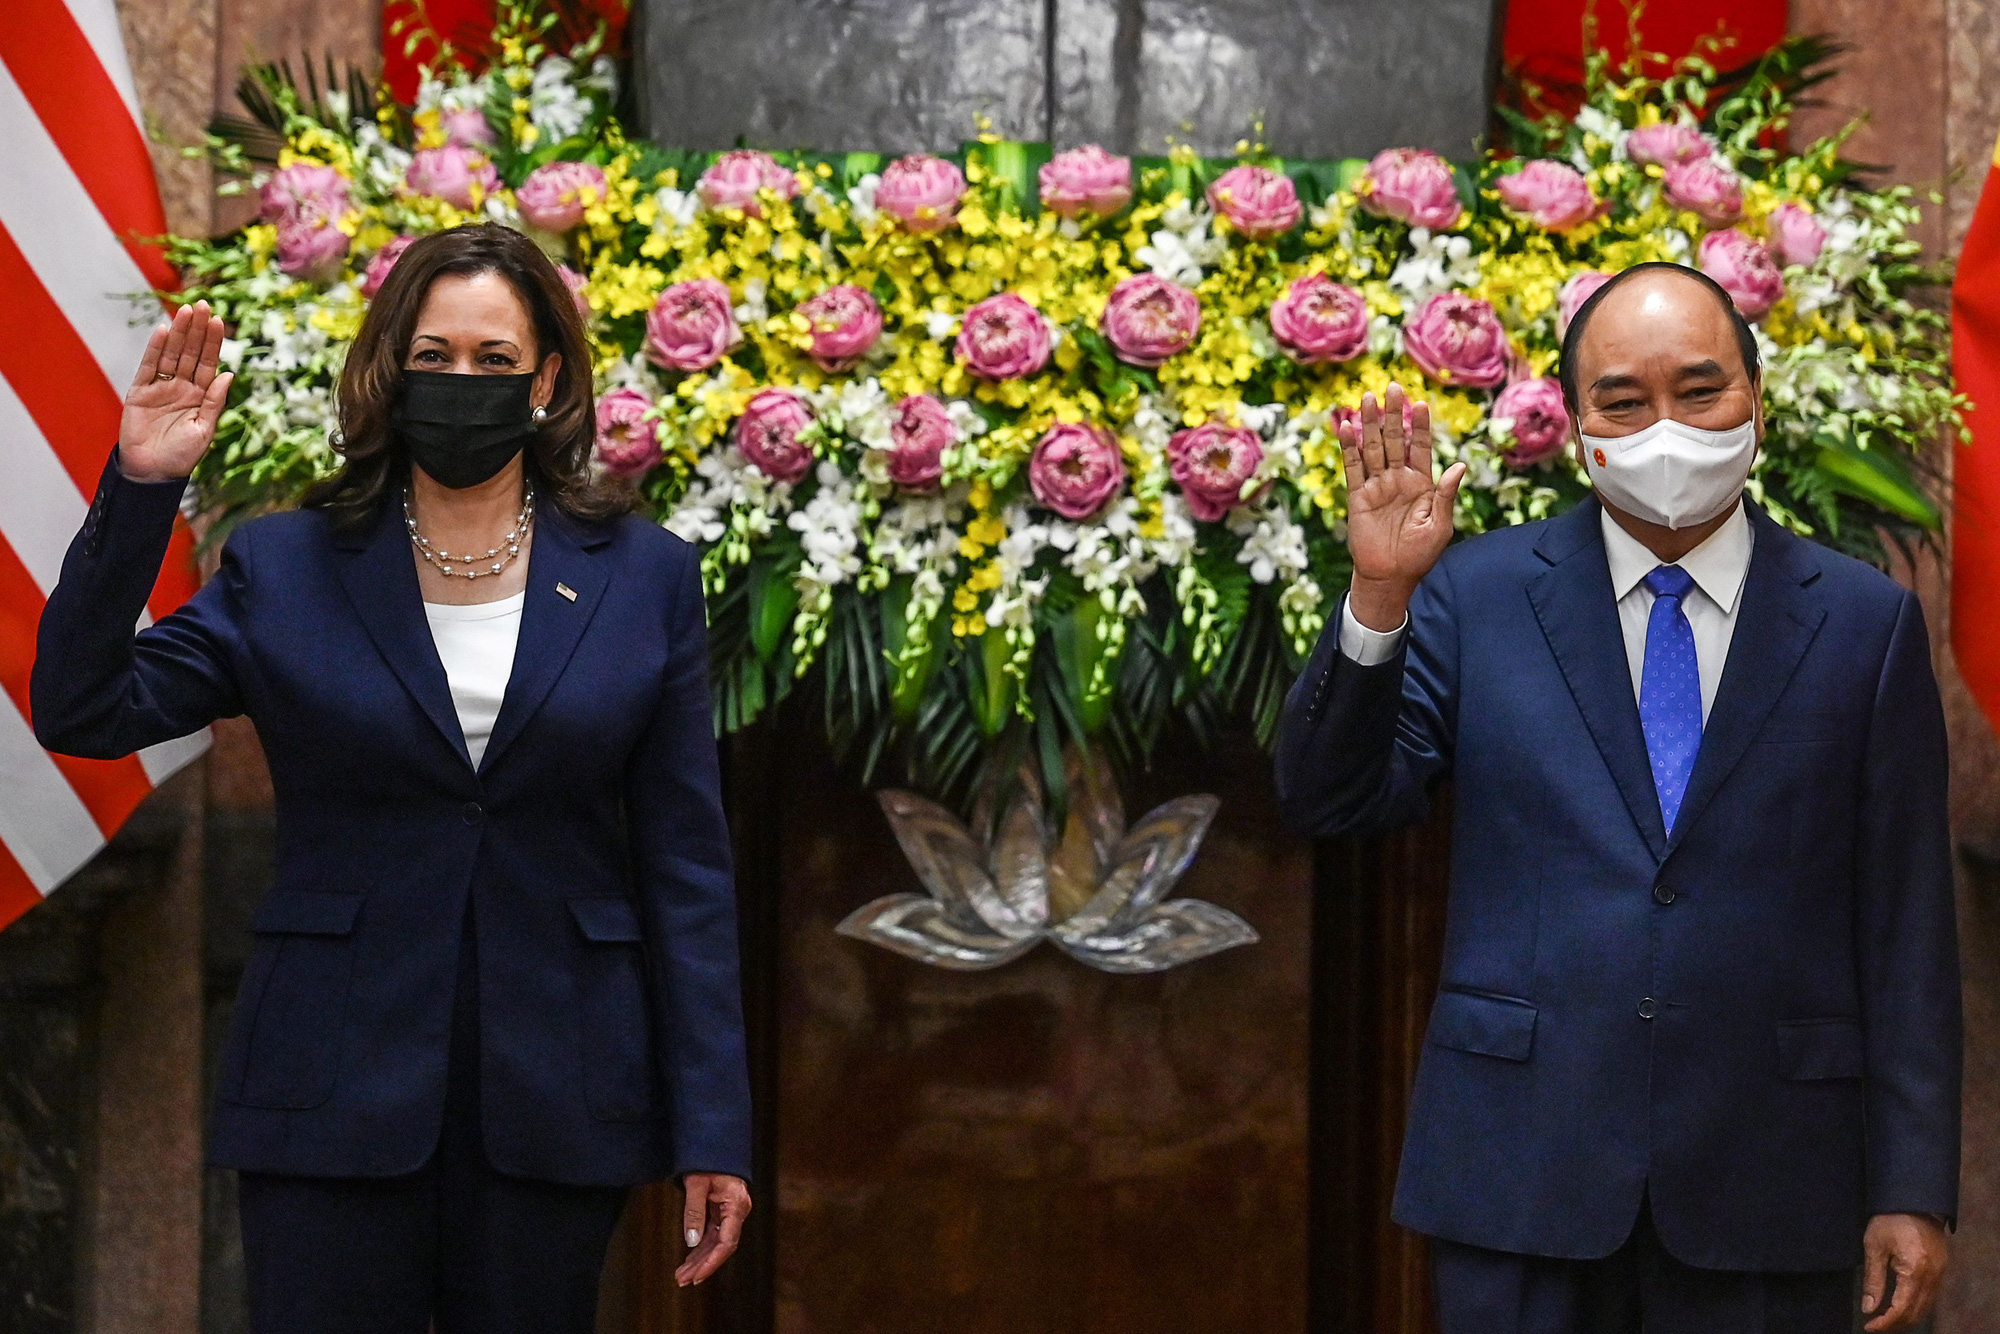 U.S. Vice President Kamala Harris and Vietnamese State President Nguyen Xuan Phuc at the presidential palace in Hanoi, August 25, 2021. Photo: Reuters